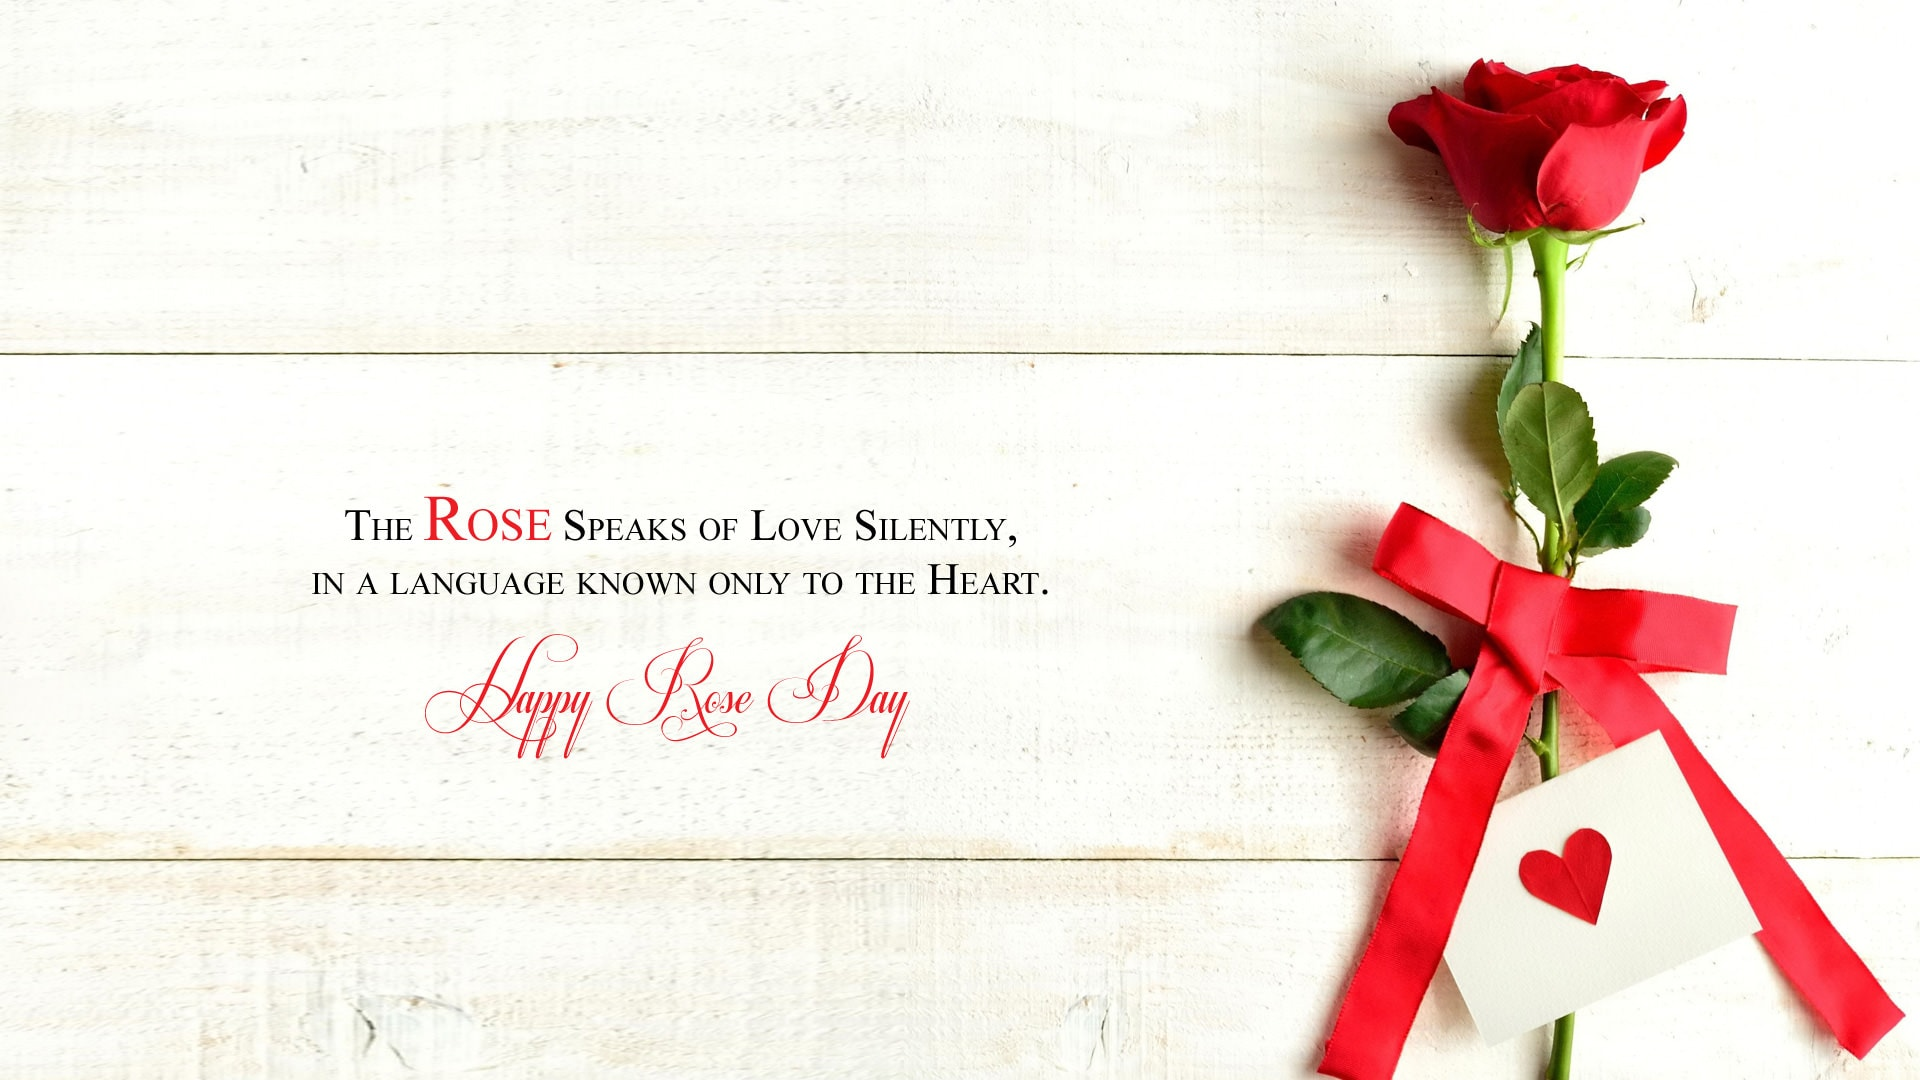 3587 Th Feb Valentine Rose Day Wallpaper Facebook Whatsapp - Beautiful Woman Good Morning Love Quotes , HD Wallpaper & Backgrounds